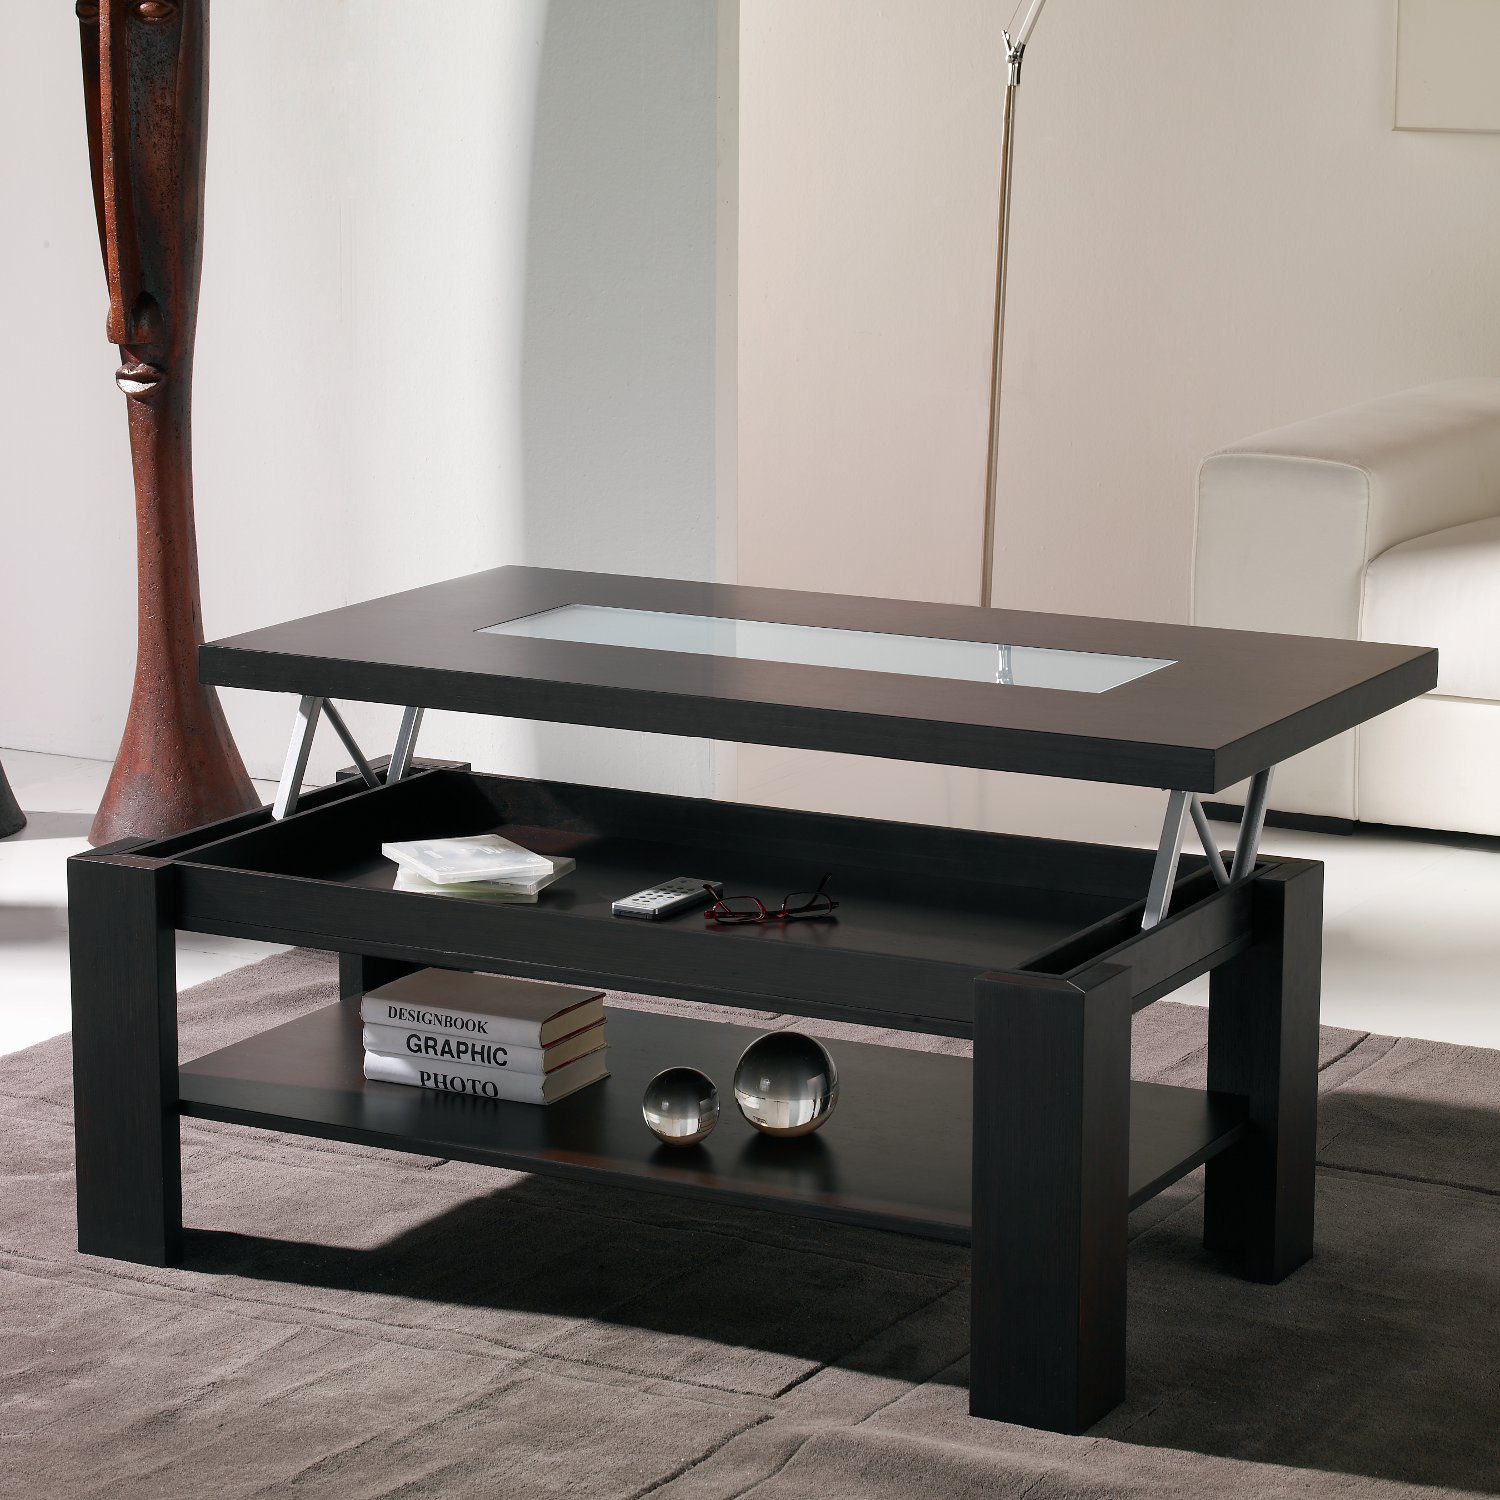 la table basse relevable r volutionne le salon d co et